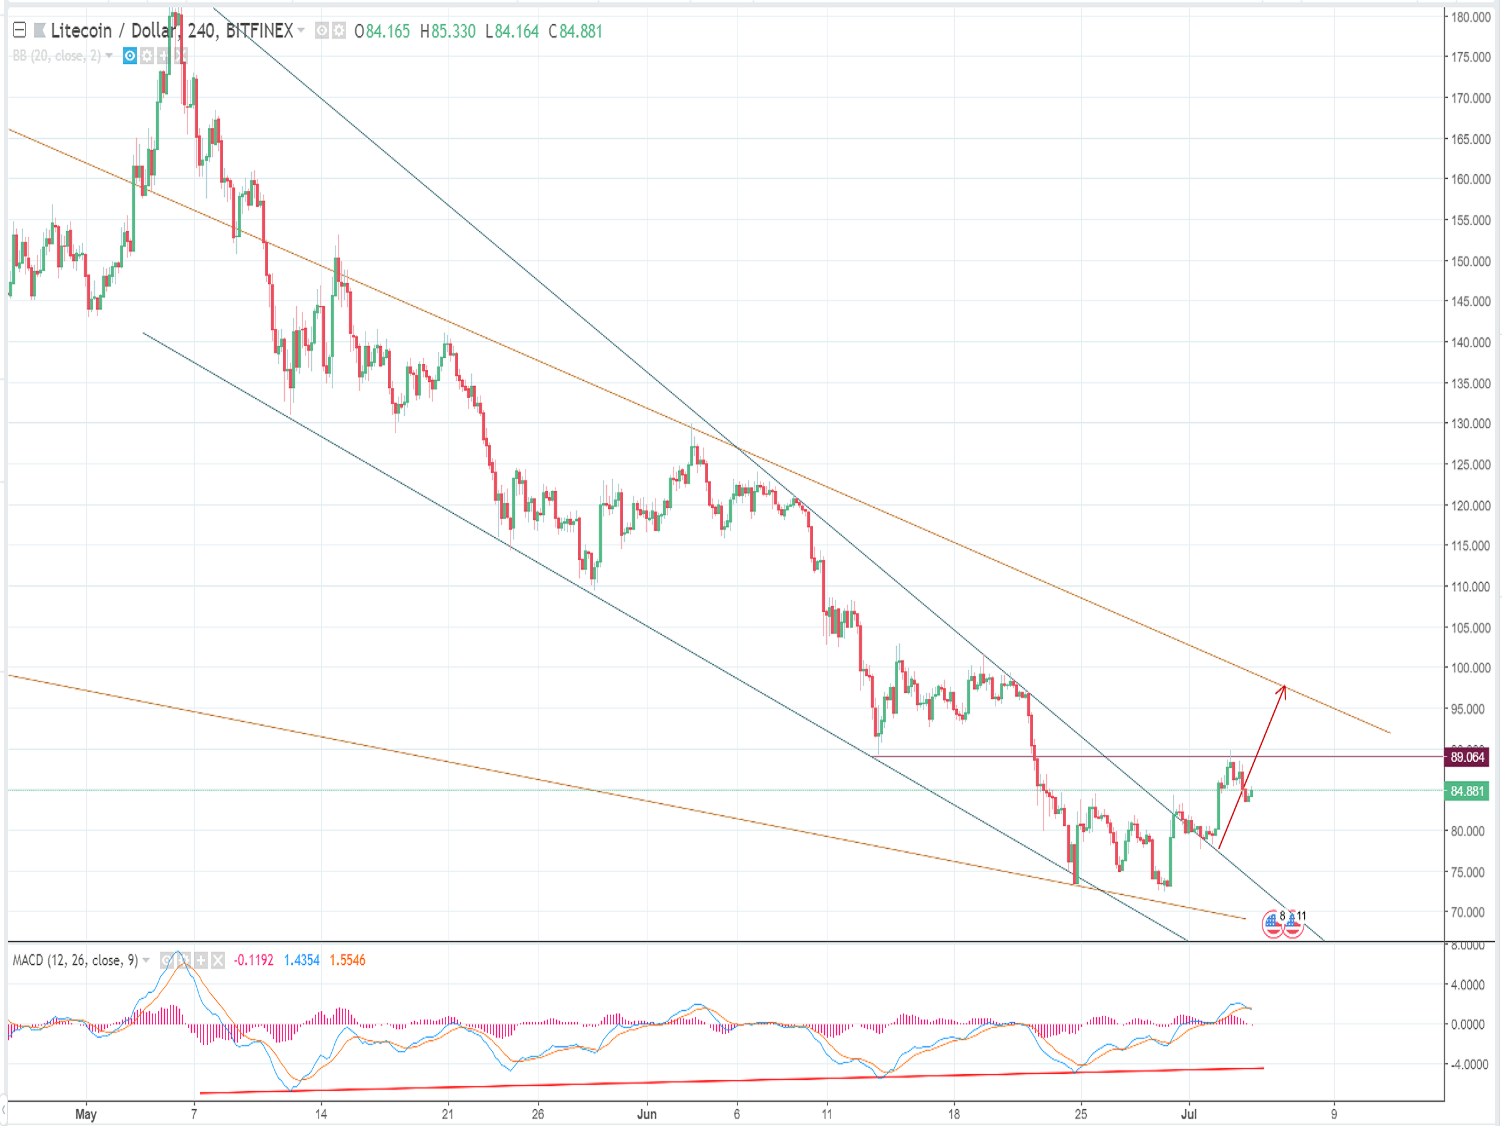 Litecoin analysis and forecast (July 4th): Green light on cryptocurrency market